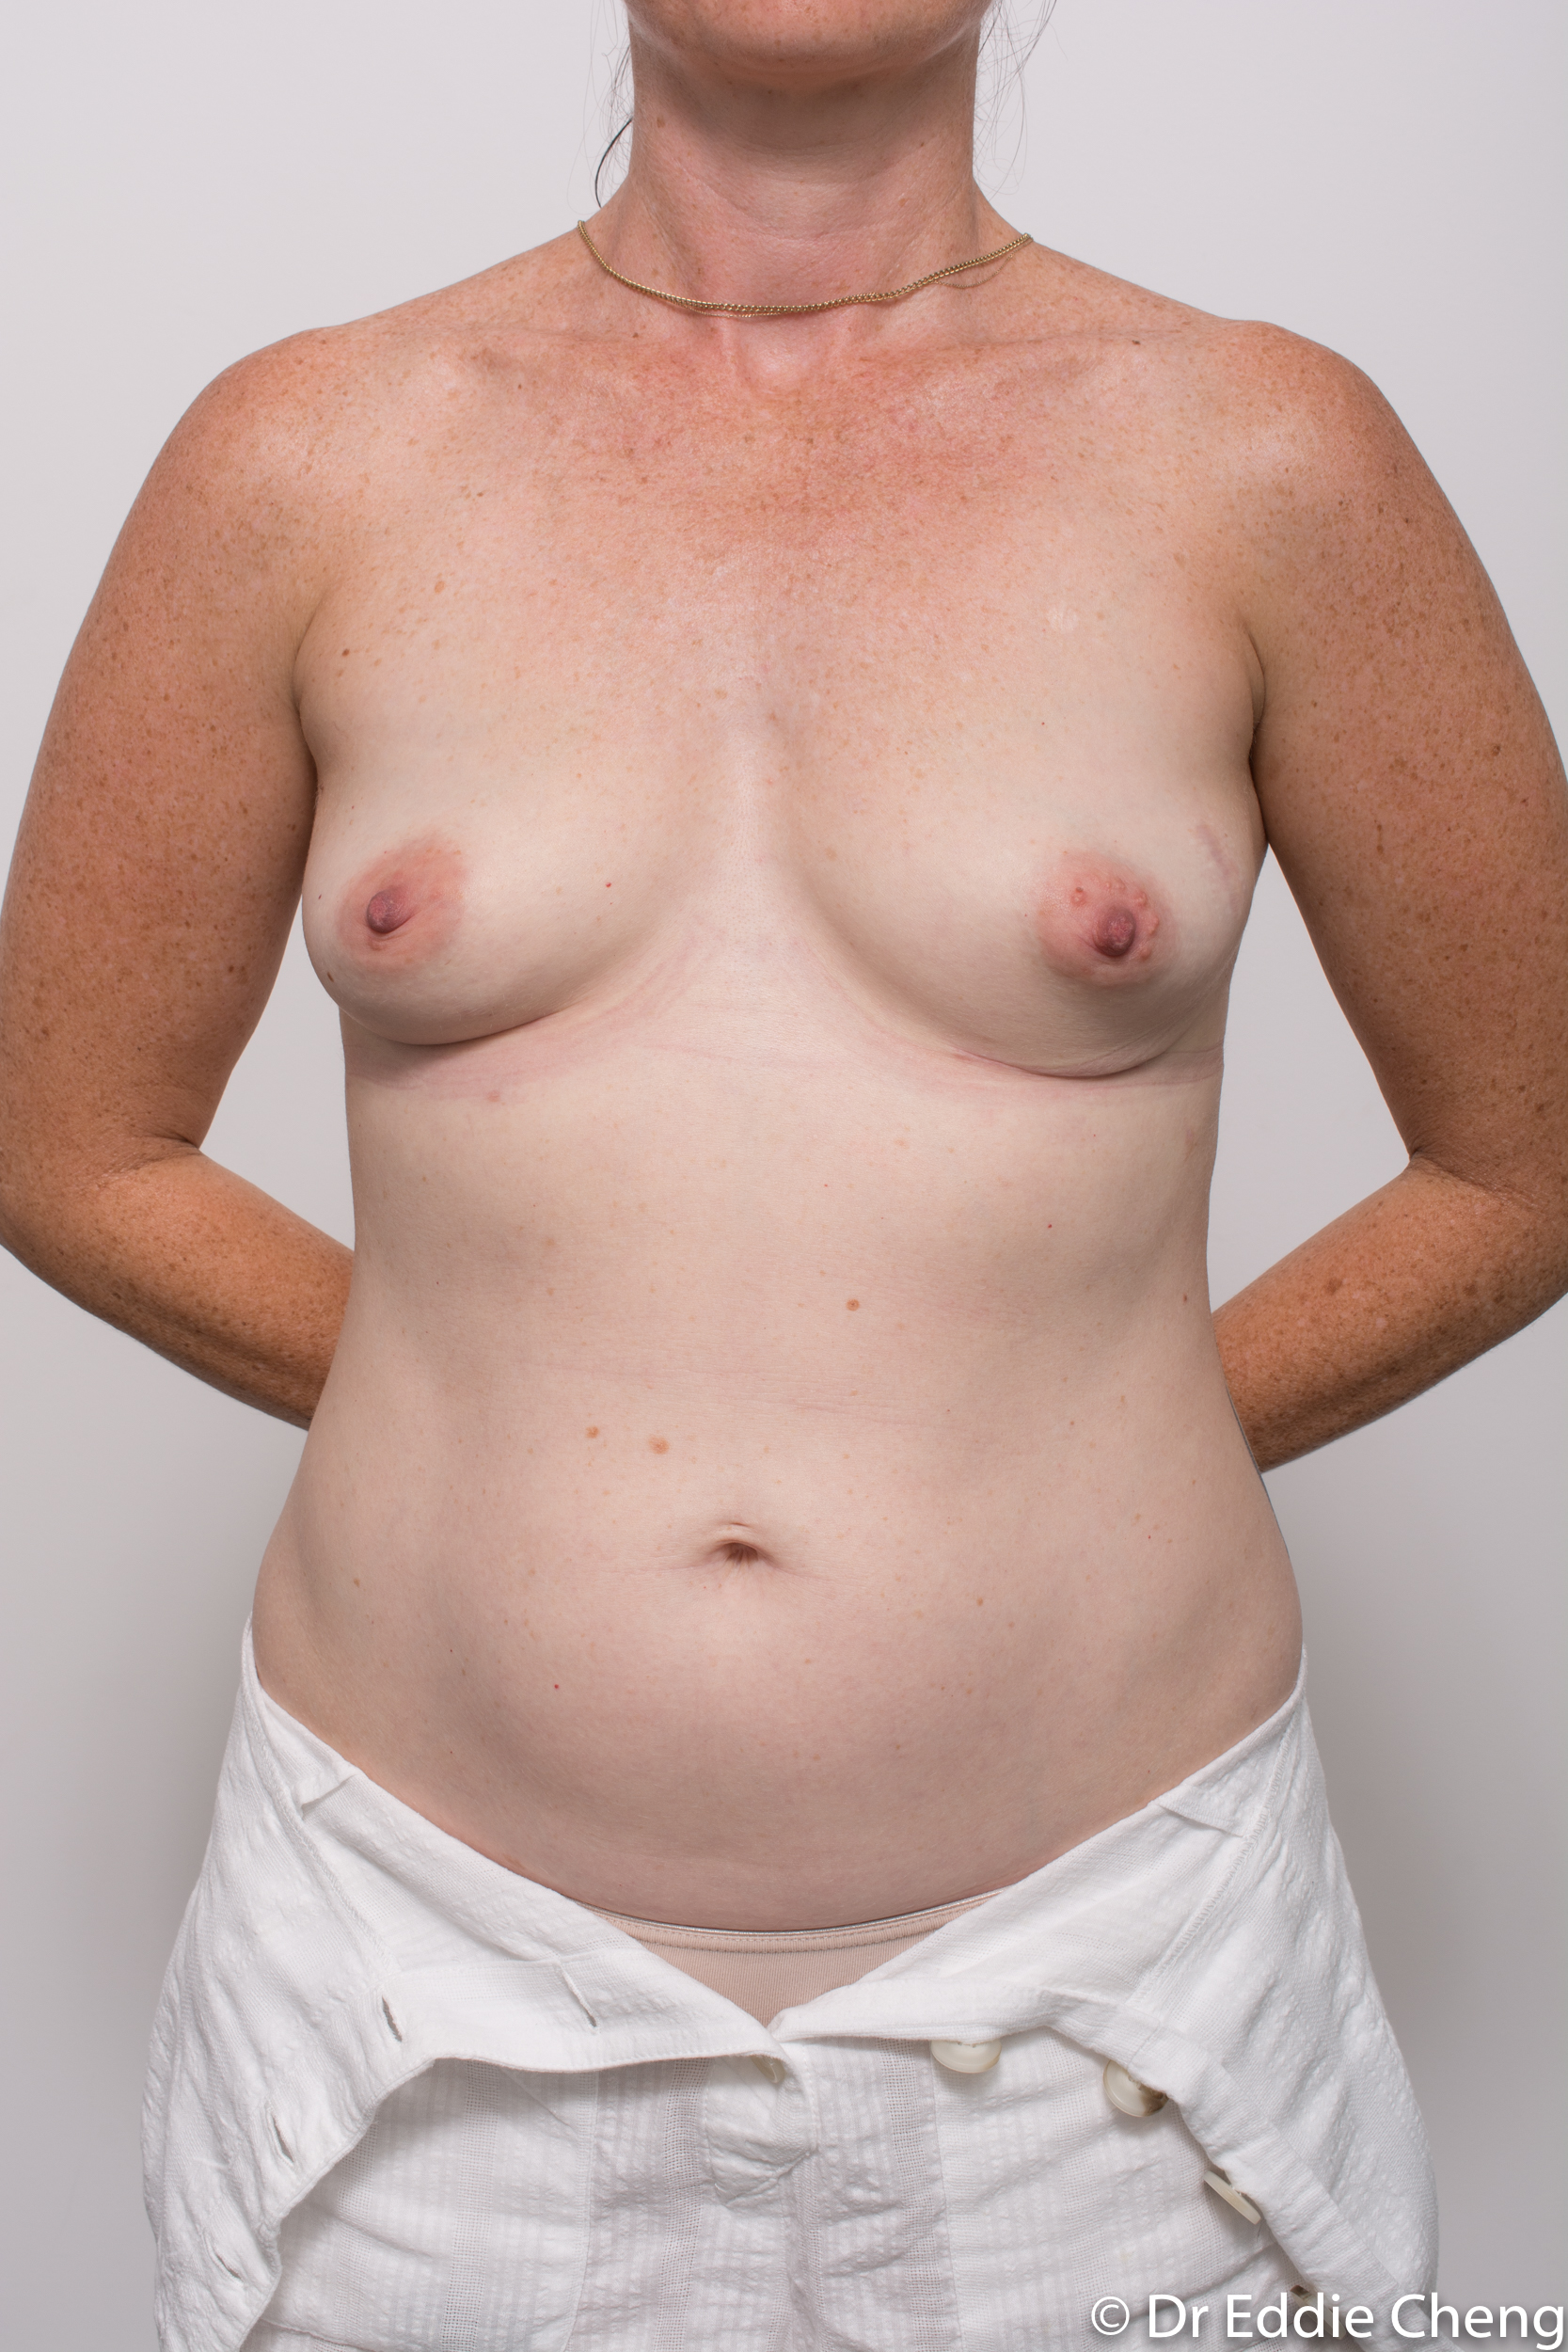 removal of implants or explant surgery dr eddie cheng brisbane-6